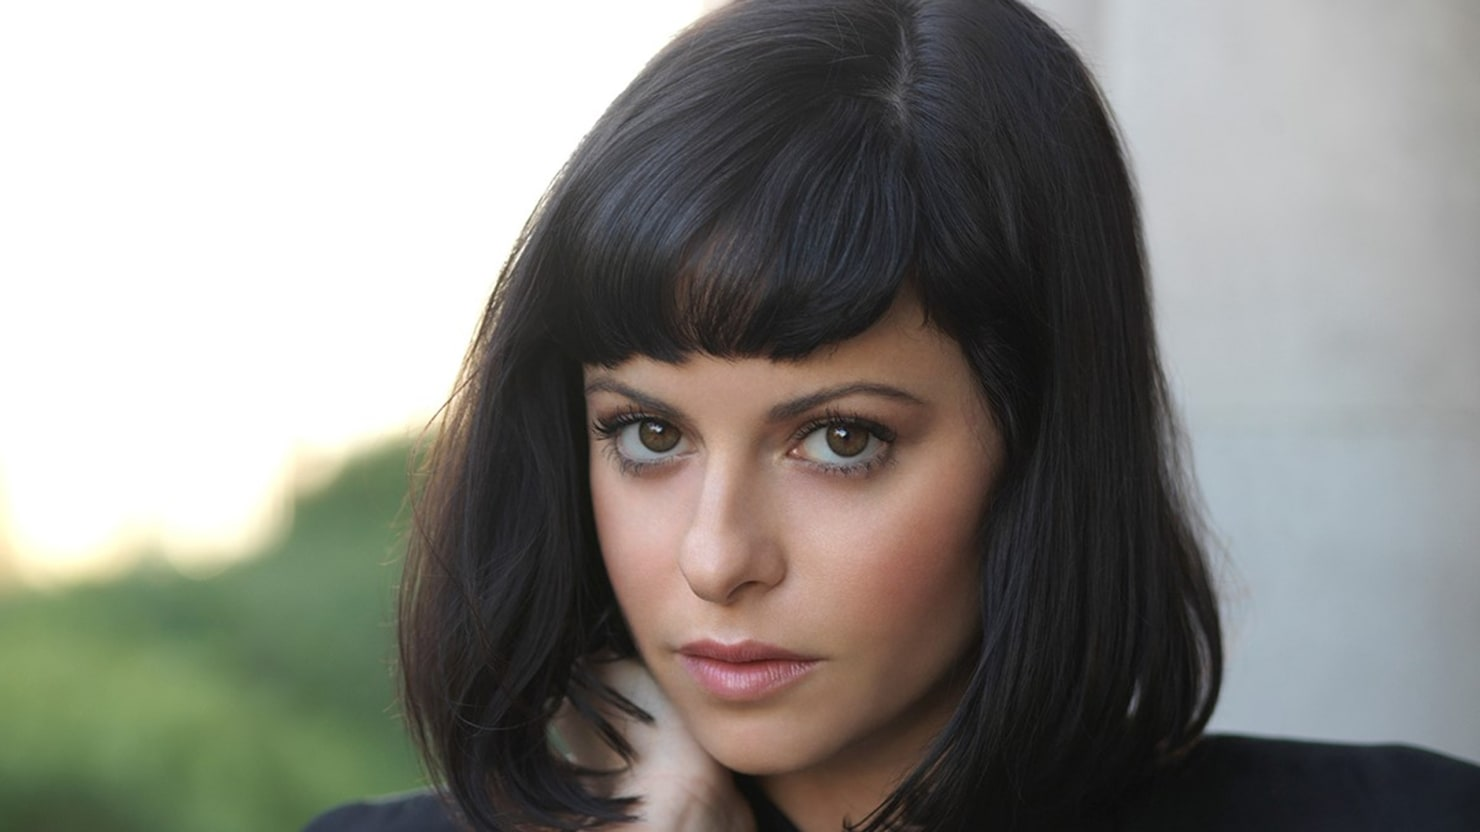 The 'Nasty Gal' Invasion: Sophia Amoruso Wants to Create an Army of #GIRLBOSSes